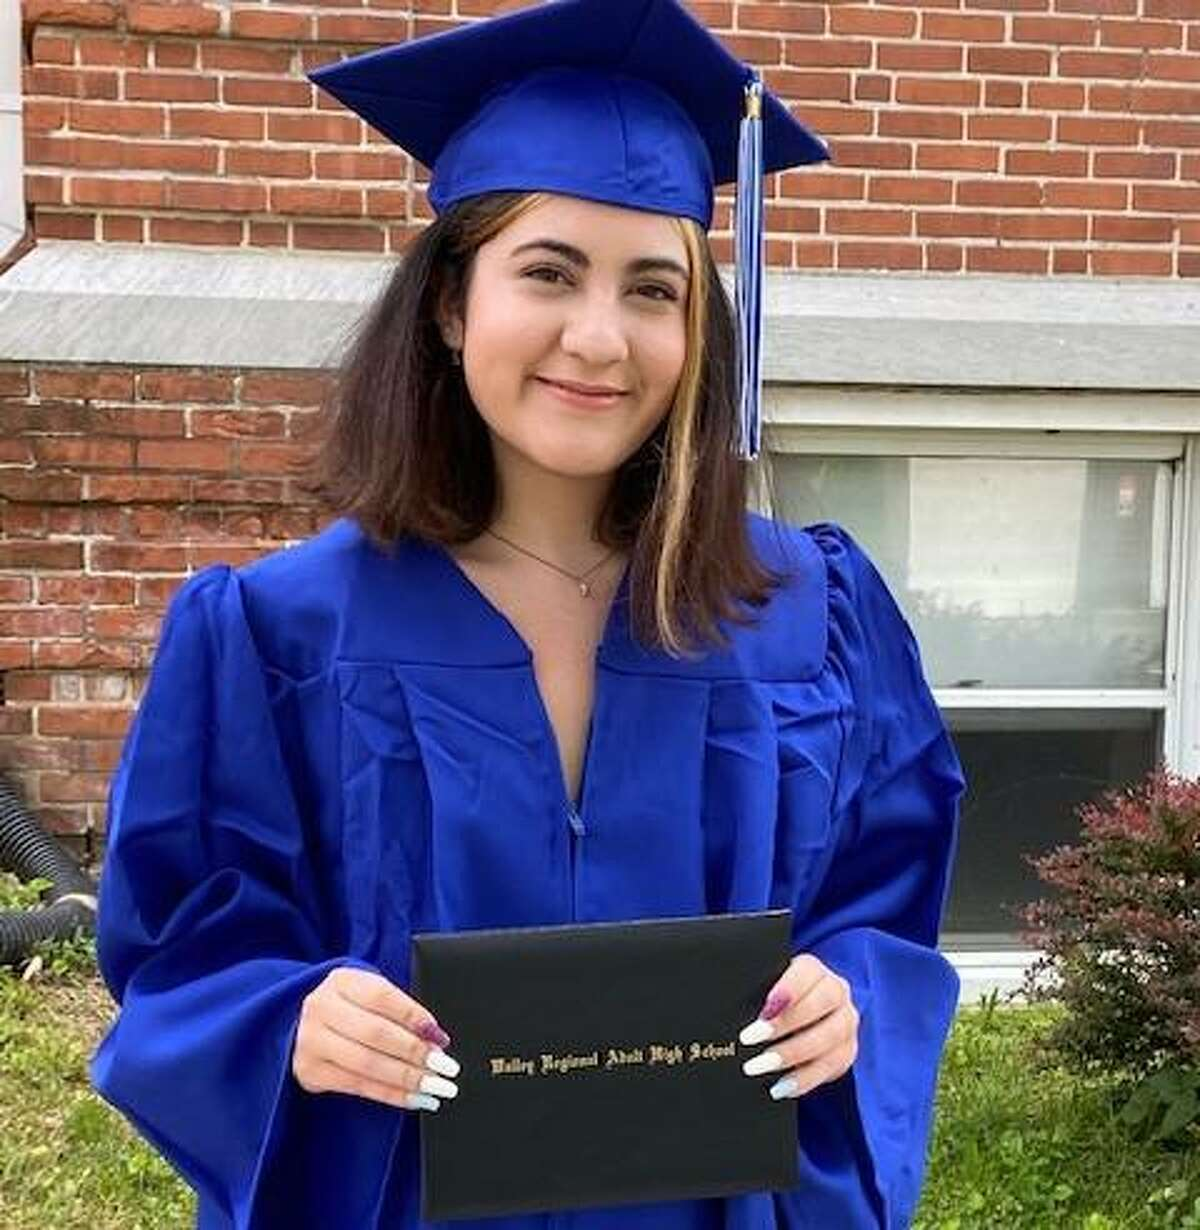 Elizabeth Gaudiosi of Shelton came to VRAE to finish her high school education through the credit diploma program with the goal of attending college. She has started an event planning business and will be applying to Gateway and Southern to study psychology.